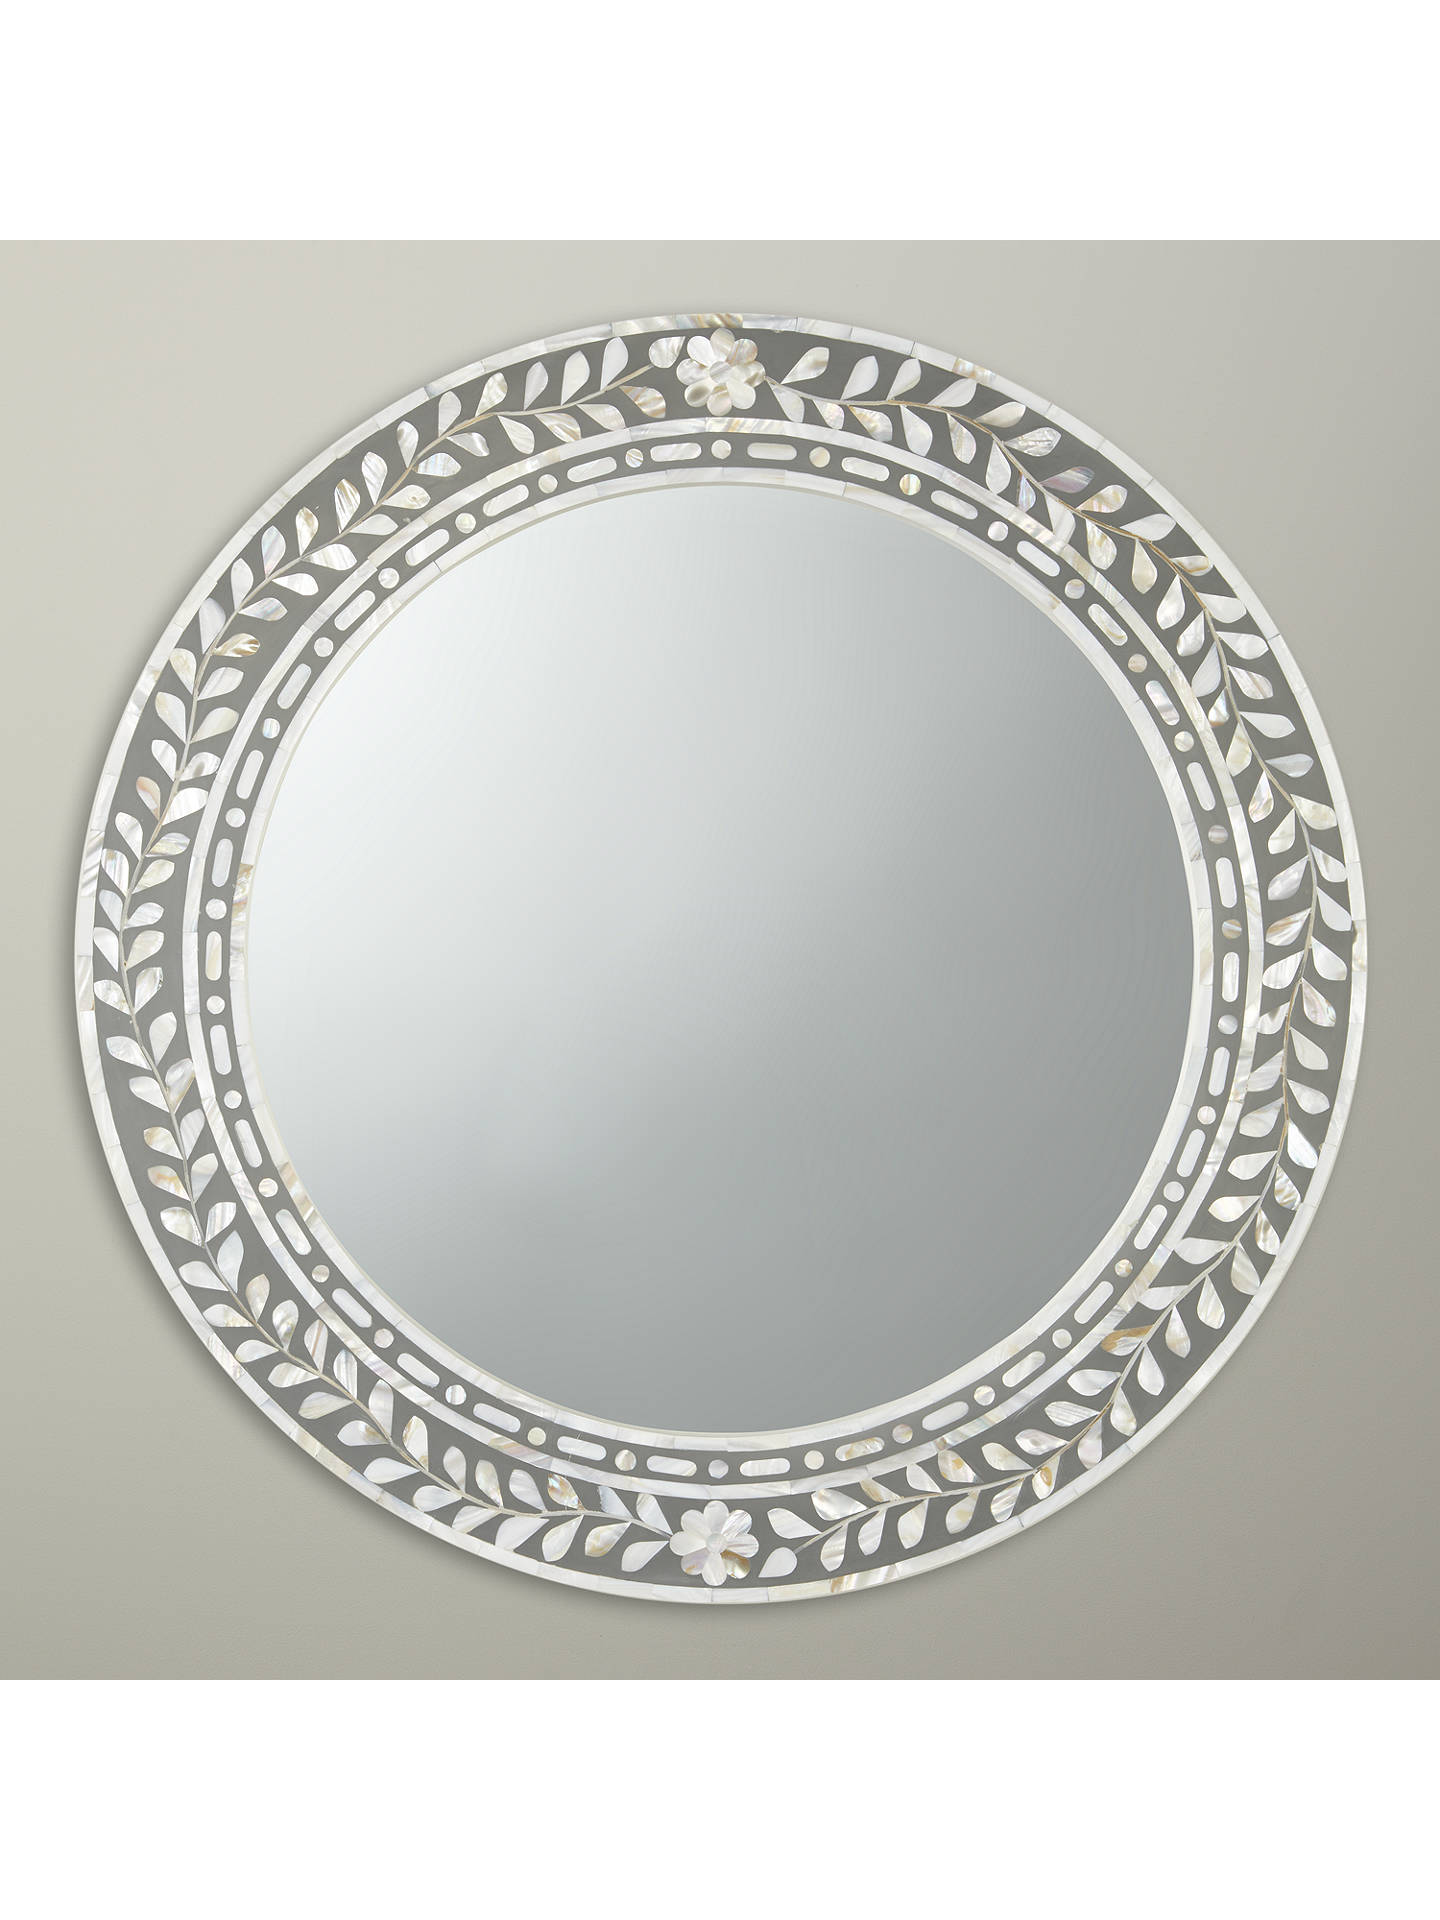 Buyjohn lewis partners mother of pearl round mirror dia 60cm natural online